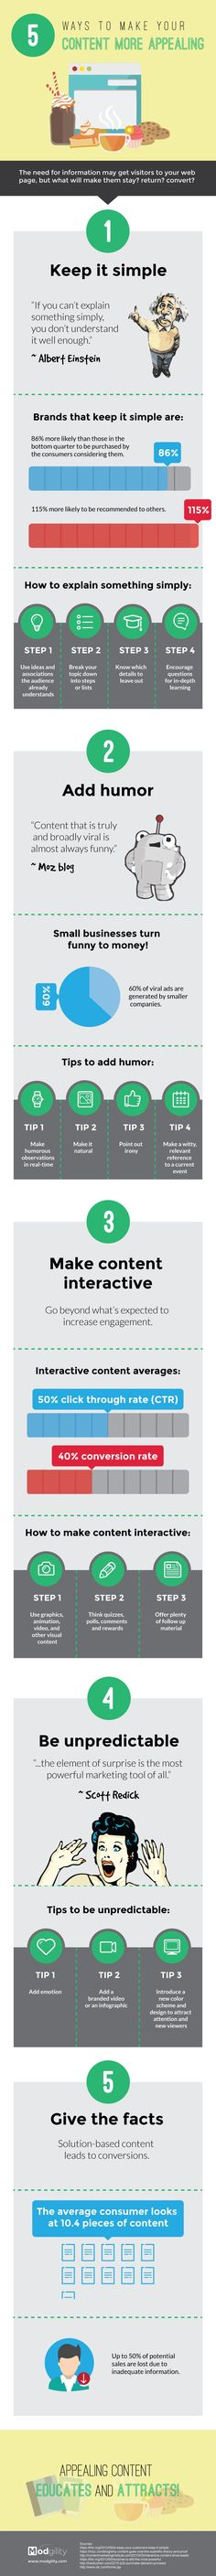 5 Ways to Make Your Content Stand Out and Get Read - BrandonGaille.com Content-Stand-Out